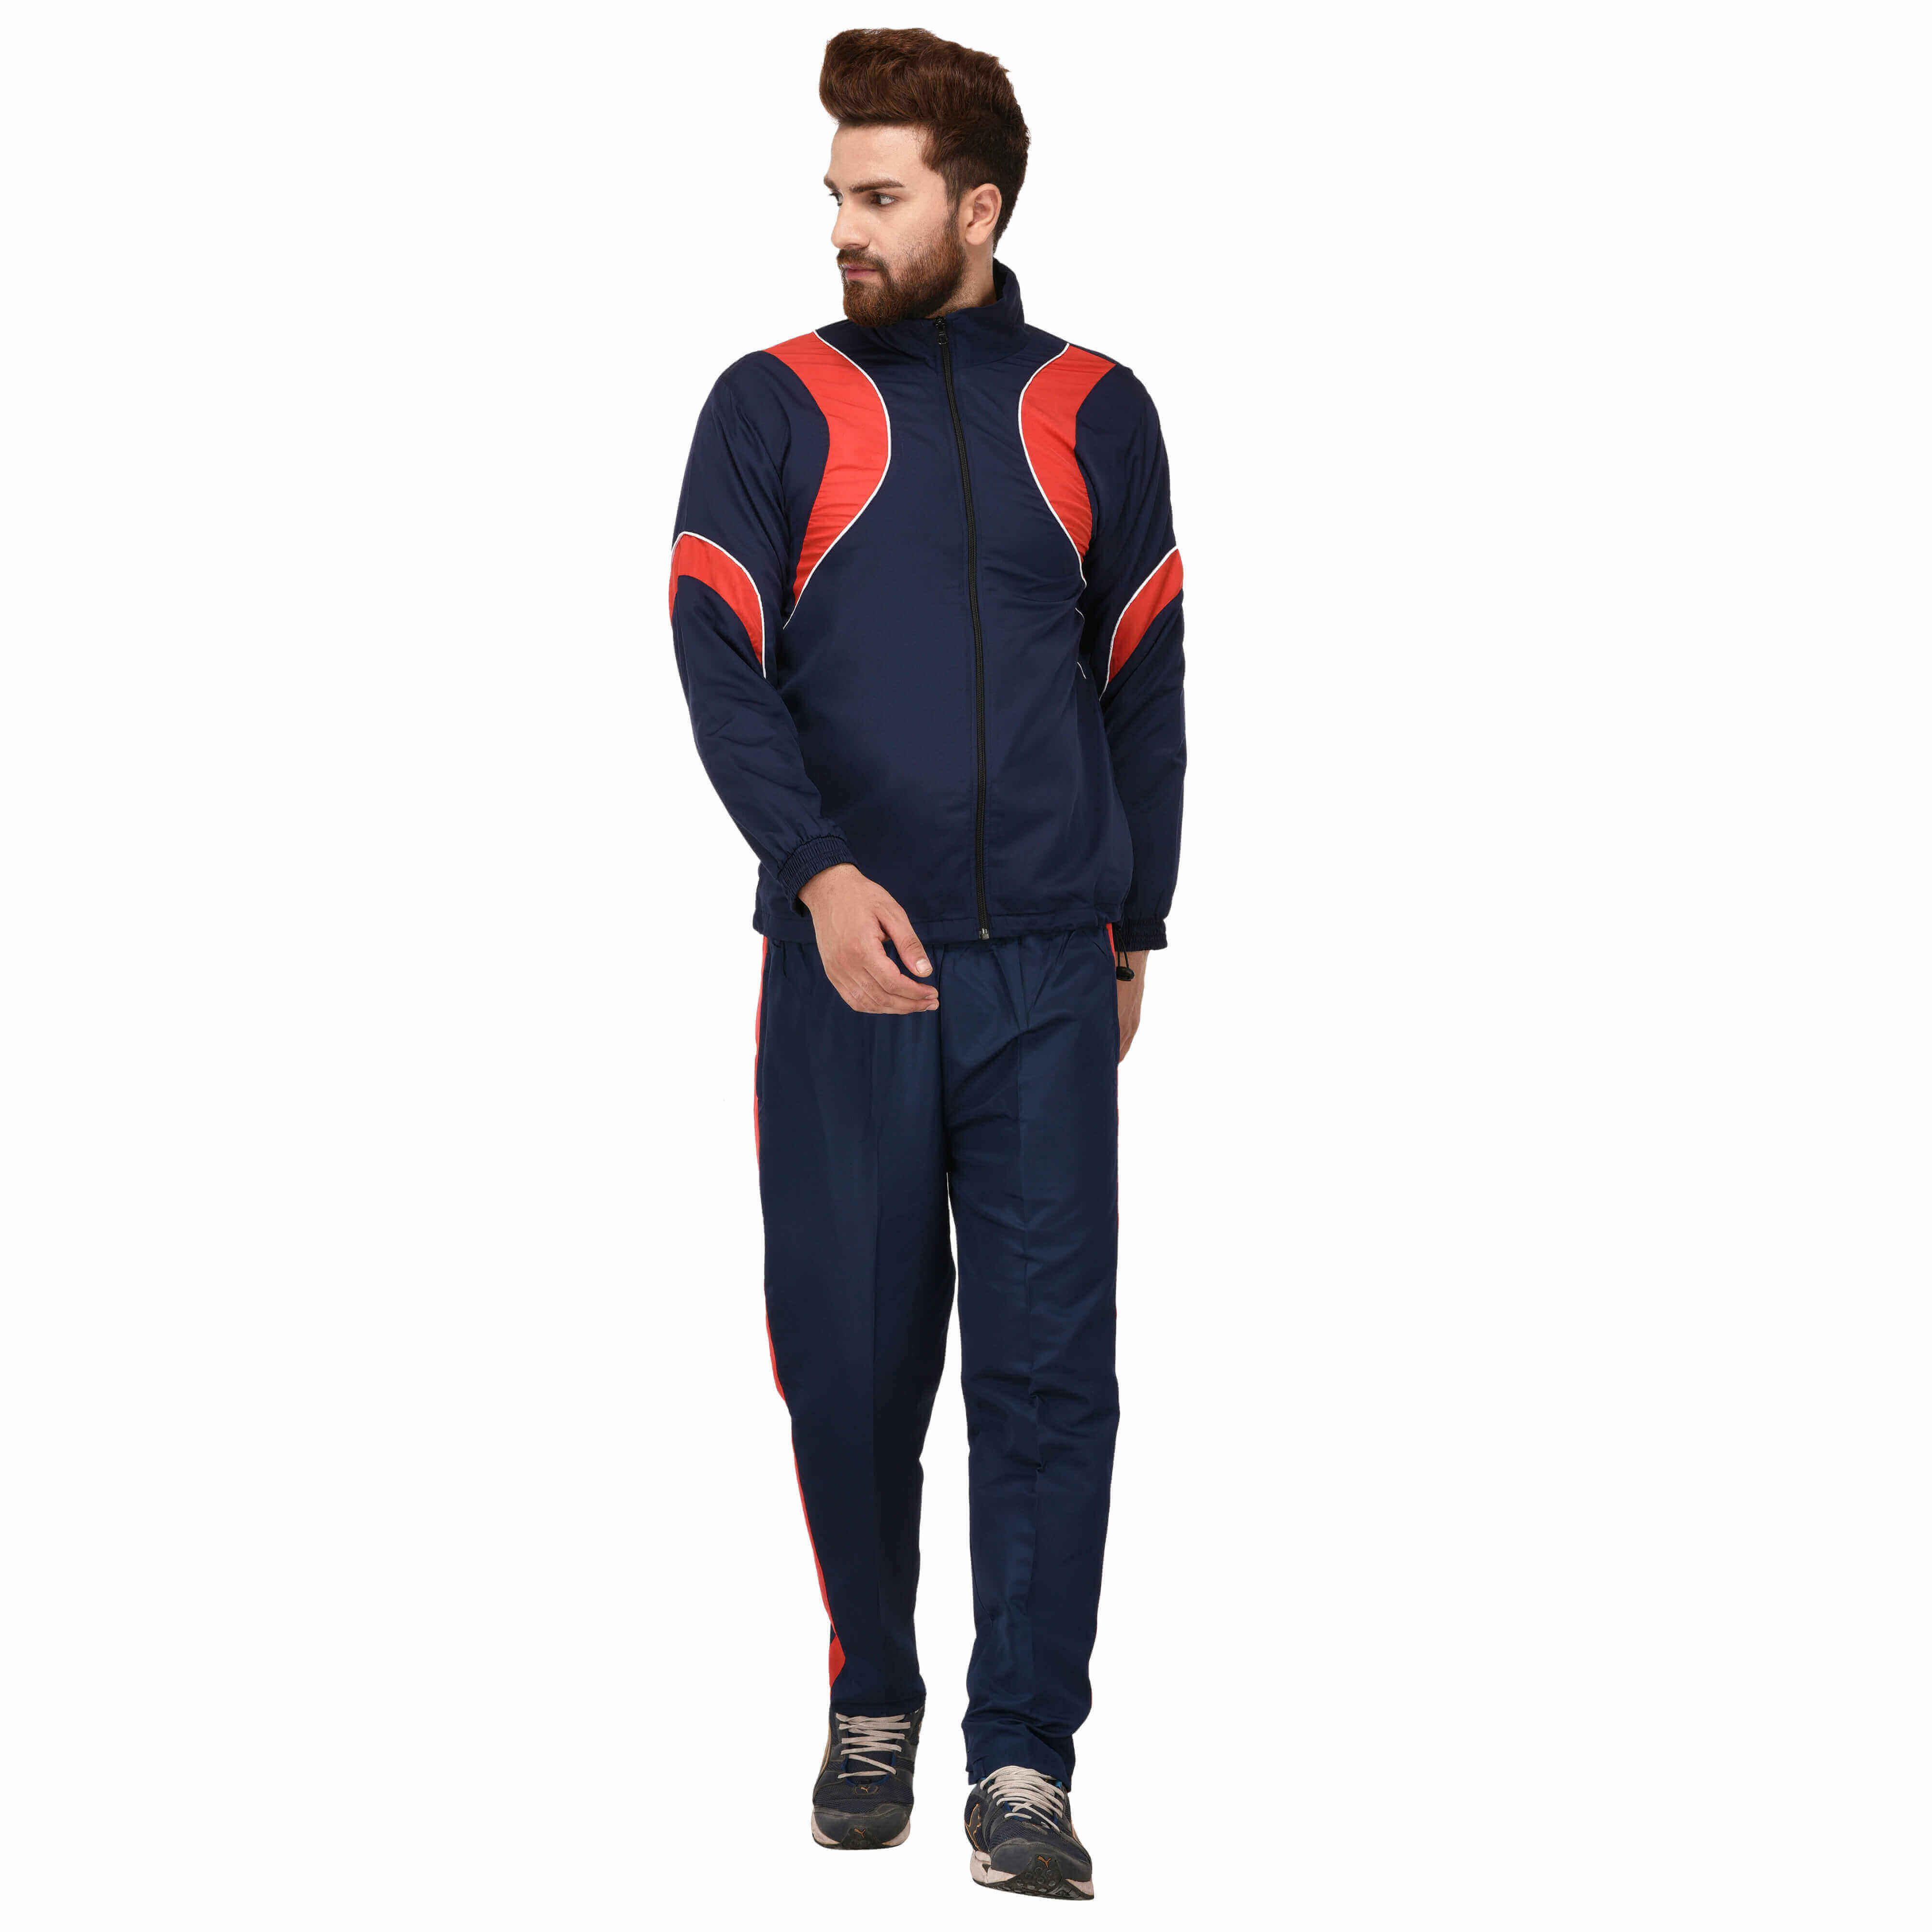 Red Tracksuit Manufacturers in Solapur